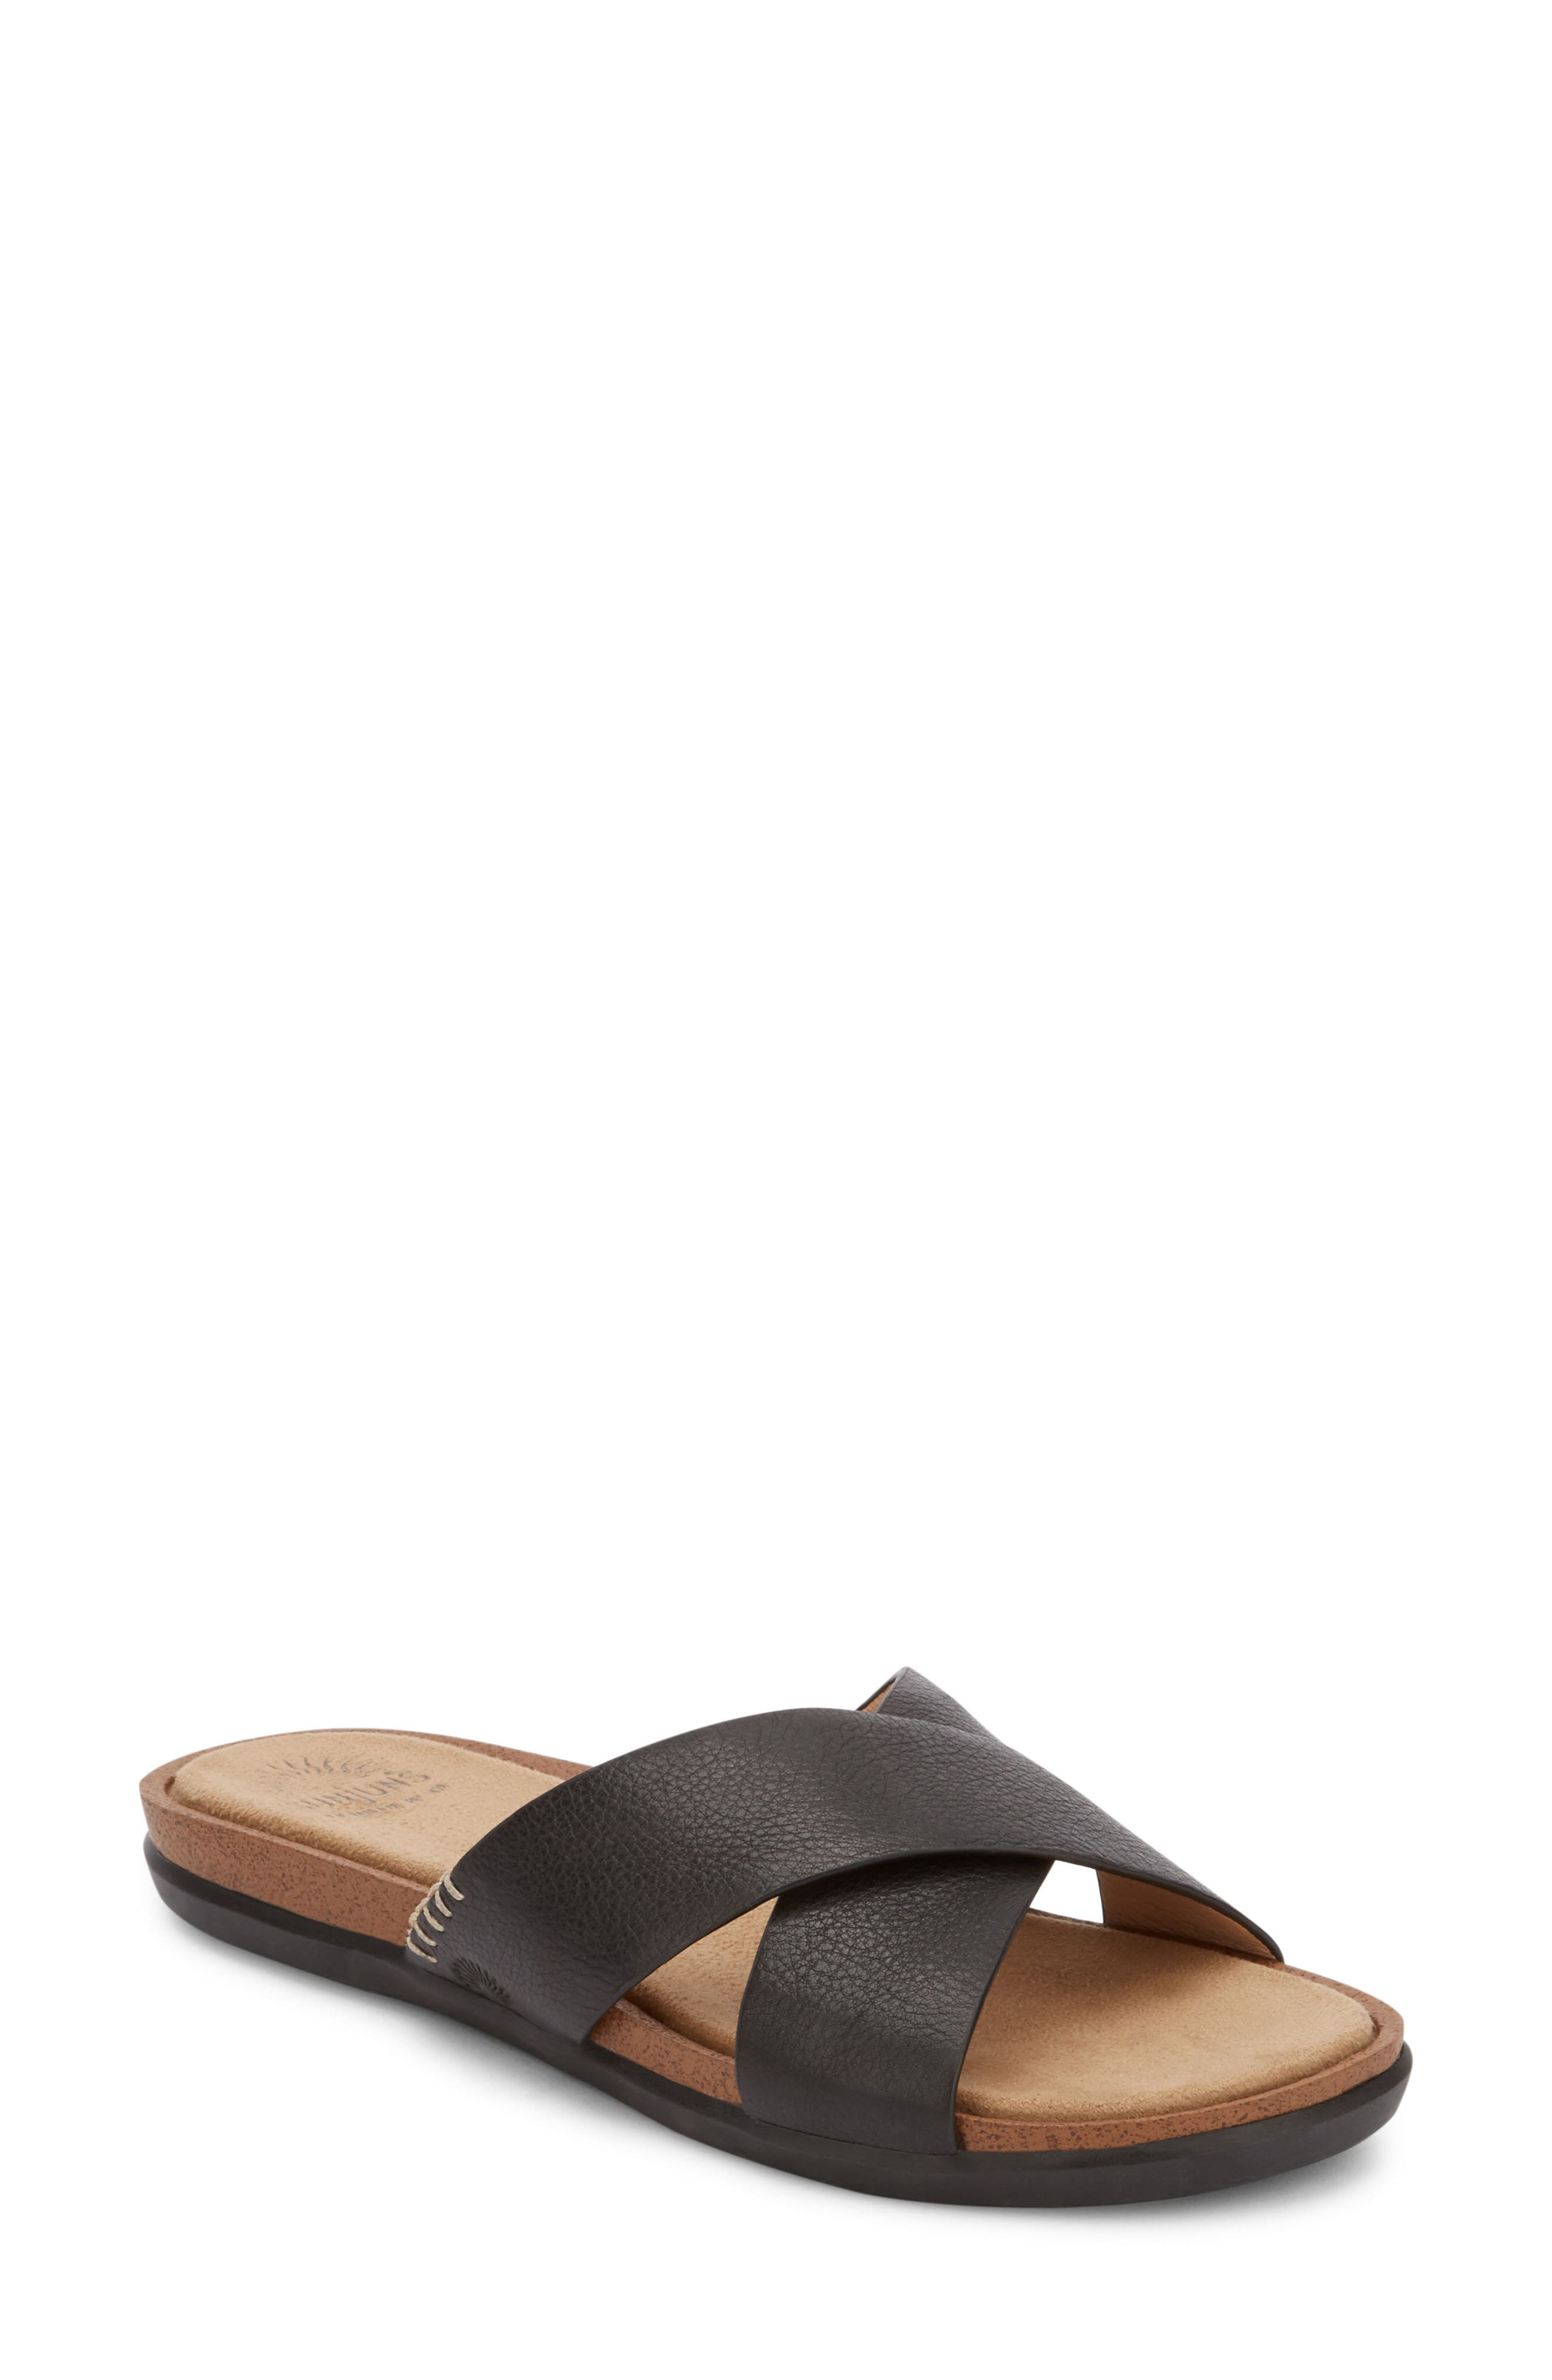 Stella Slide Sandal,                         Main,                         color, BLACK LEATHER